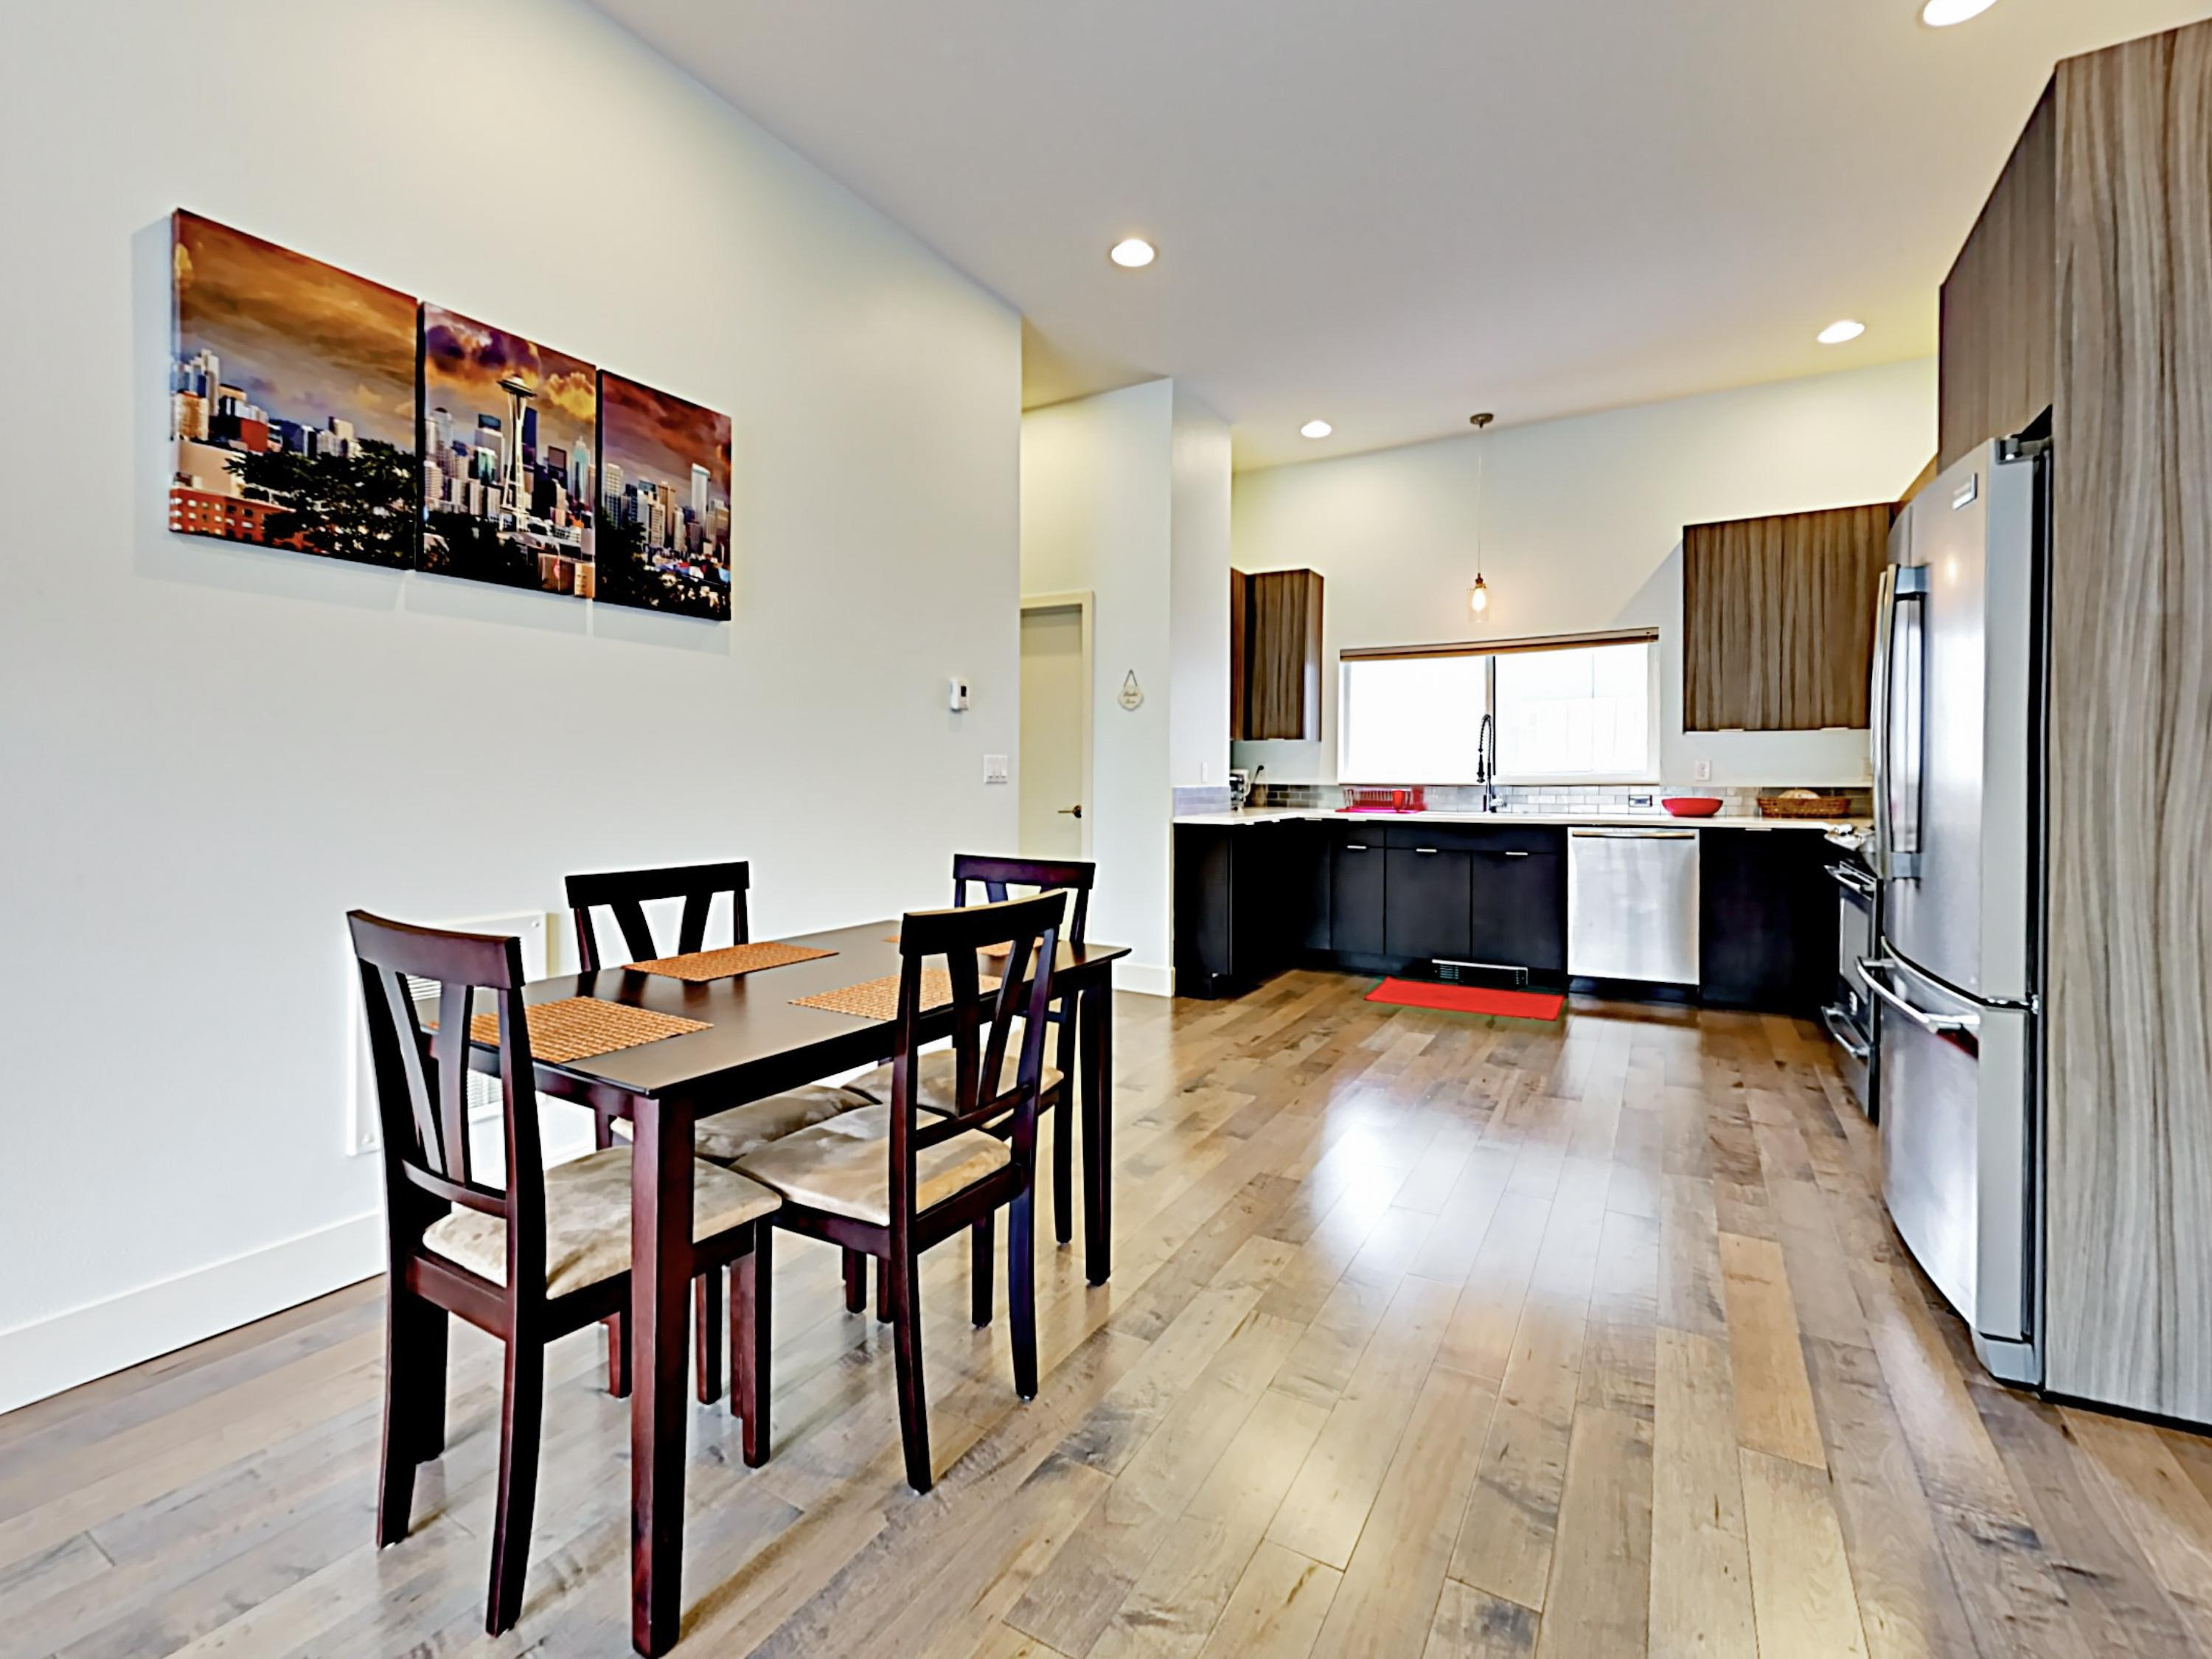 The spacious and open kitchen/dining area boasts tall ceilings, sleek wooden flooring, and all-new furnishings.